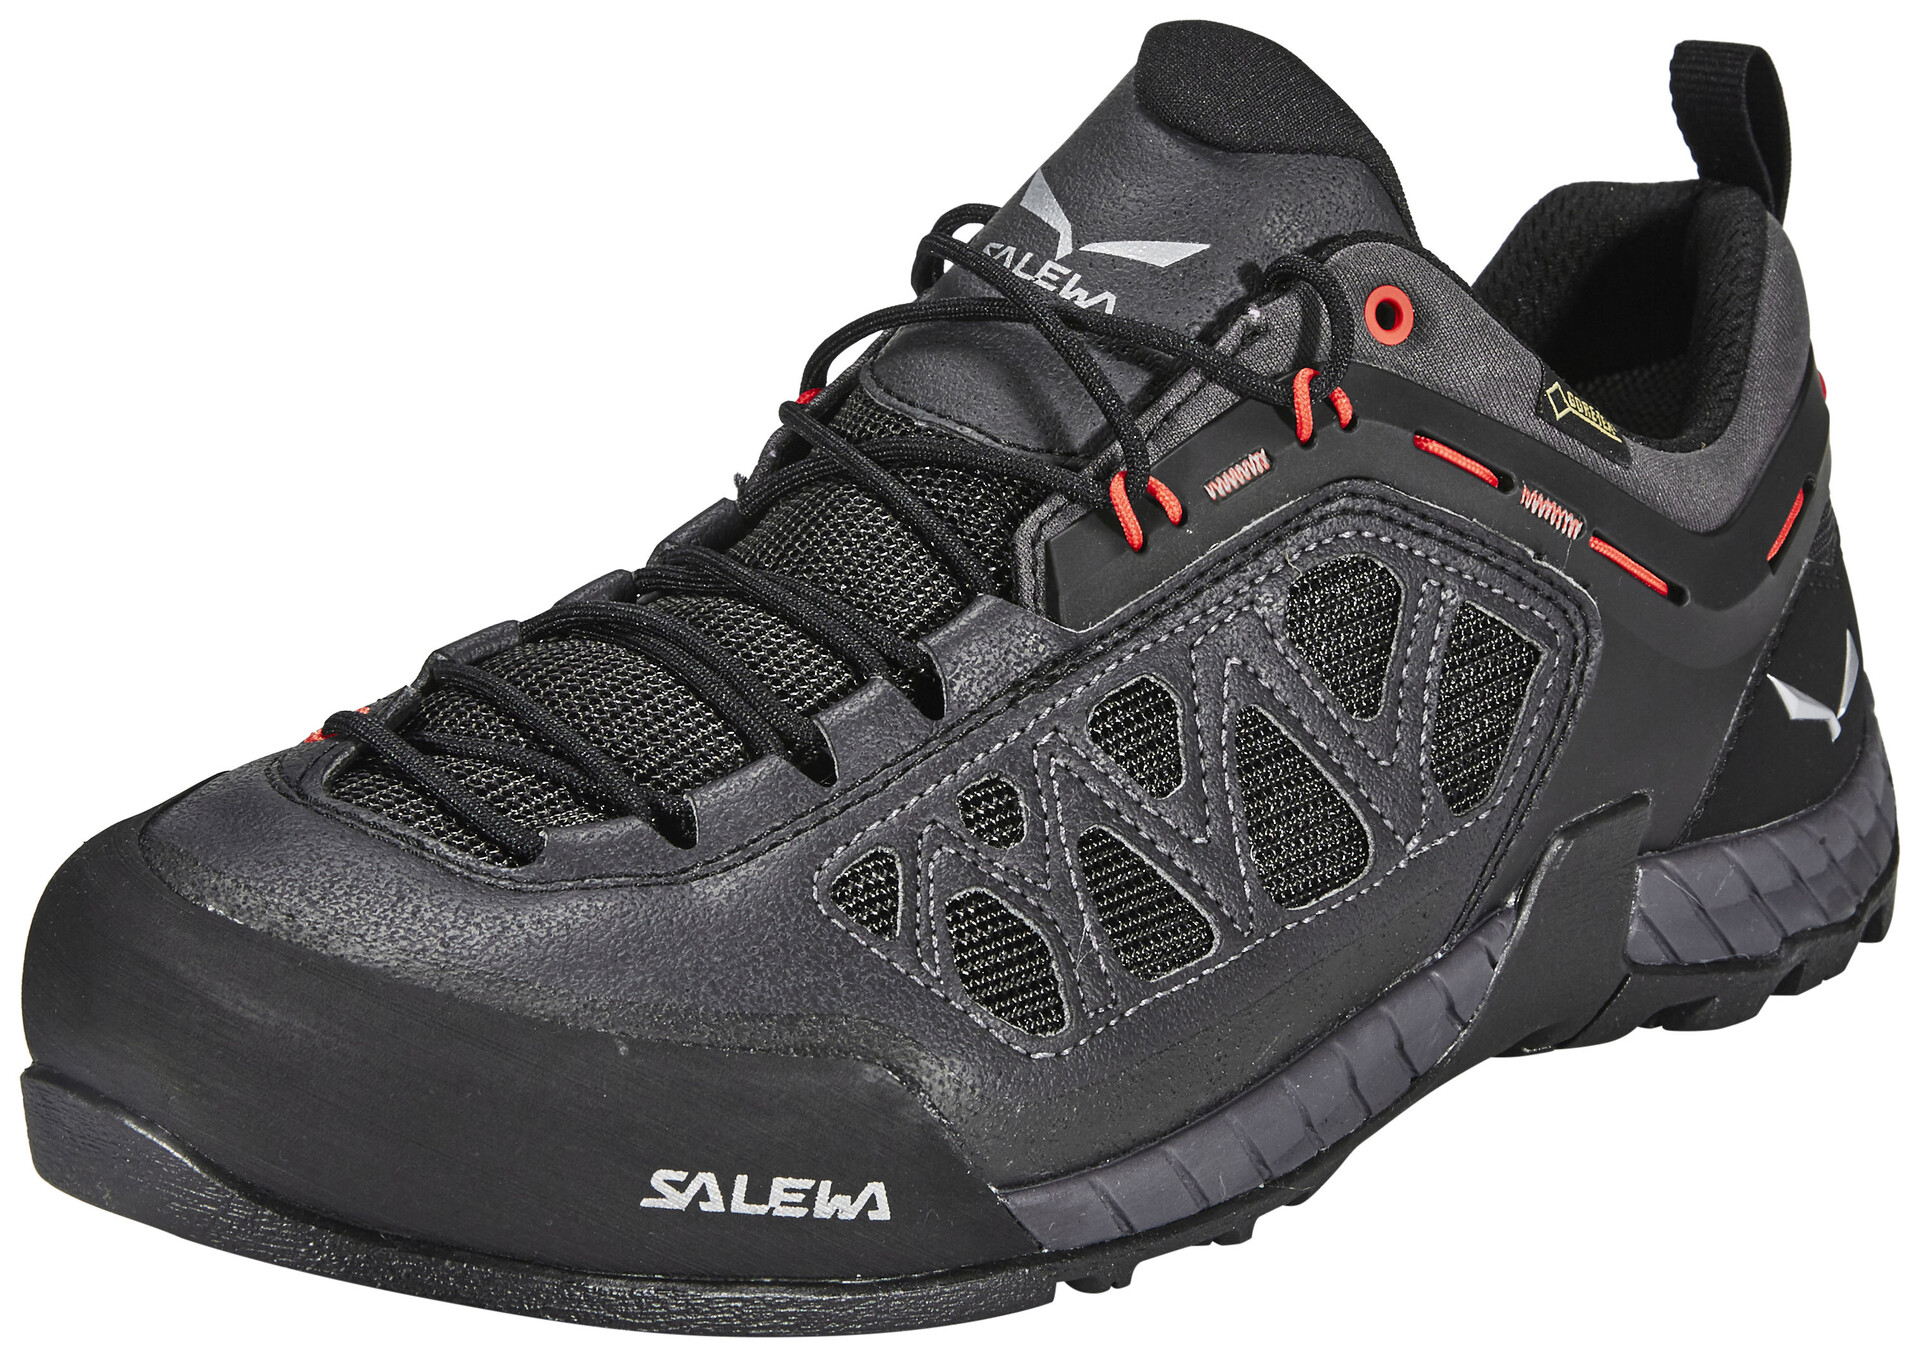 Salewa Klettergurt Größentabelle : Salewa firetail gtx shoes men black out papavero campz